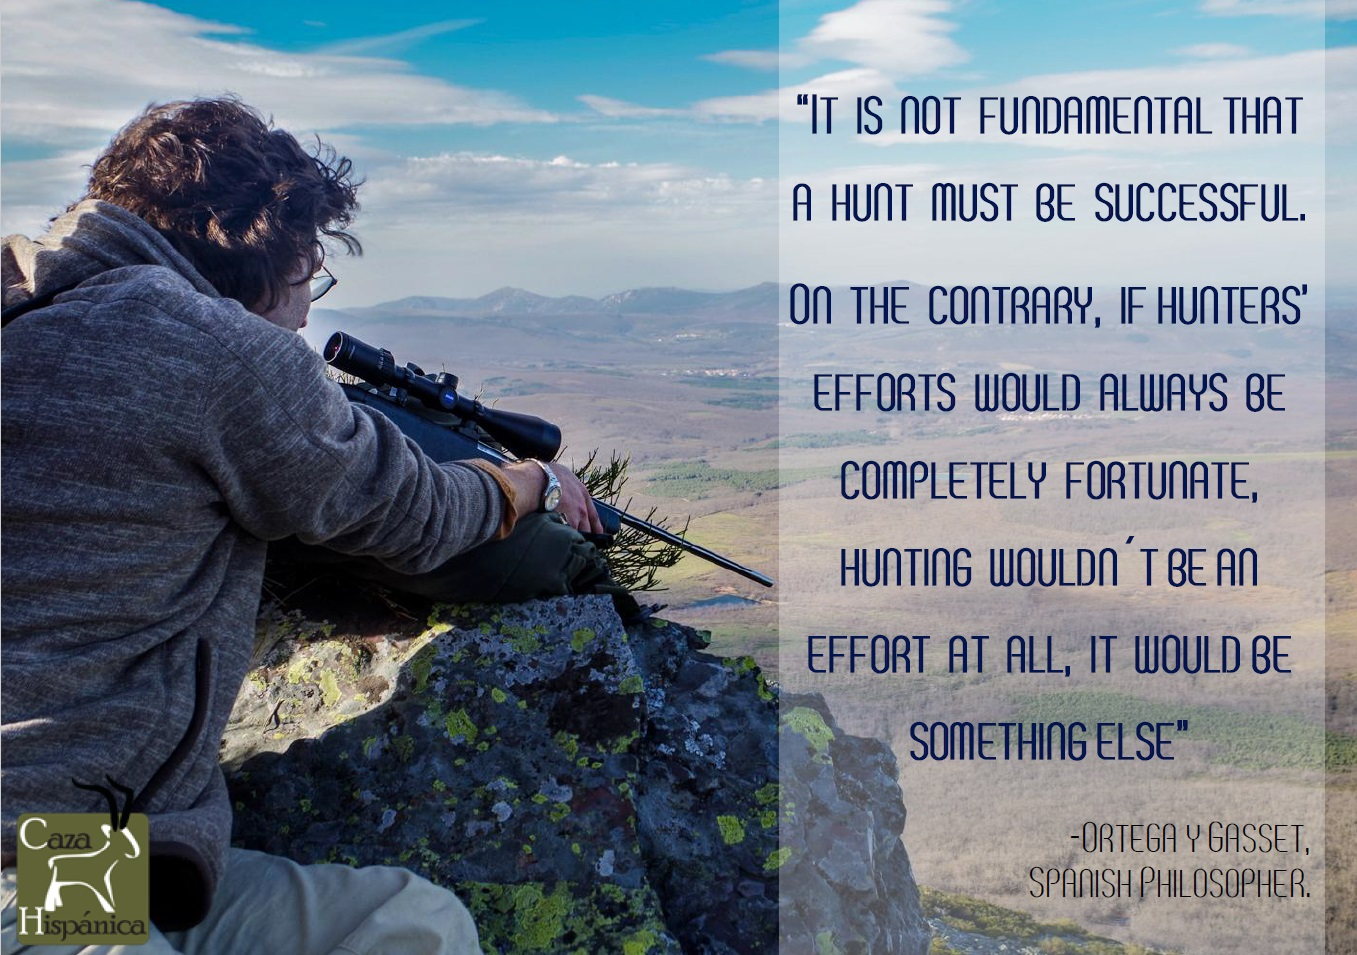 10 Hunting wallpapers and quotes made in Spain - Caza Hispánica